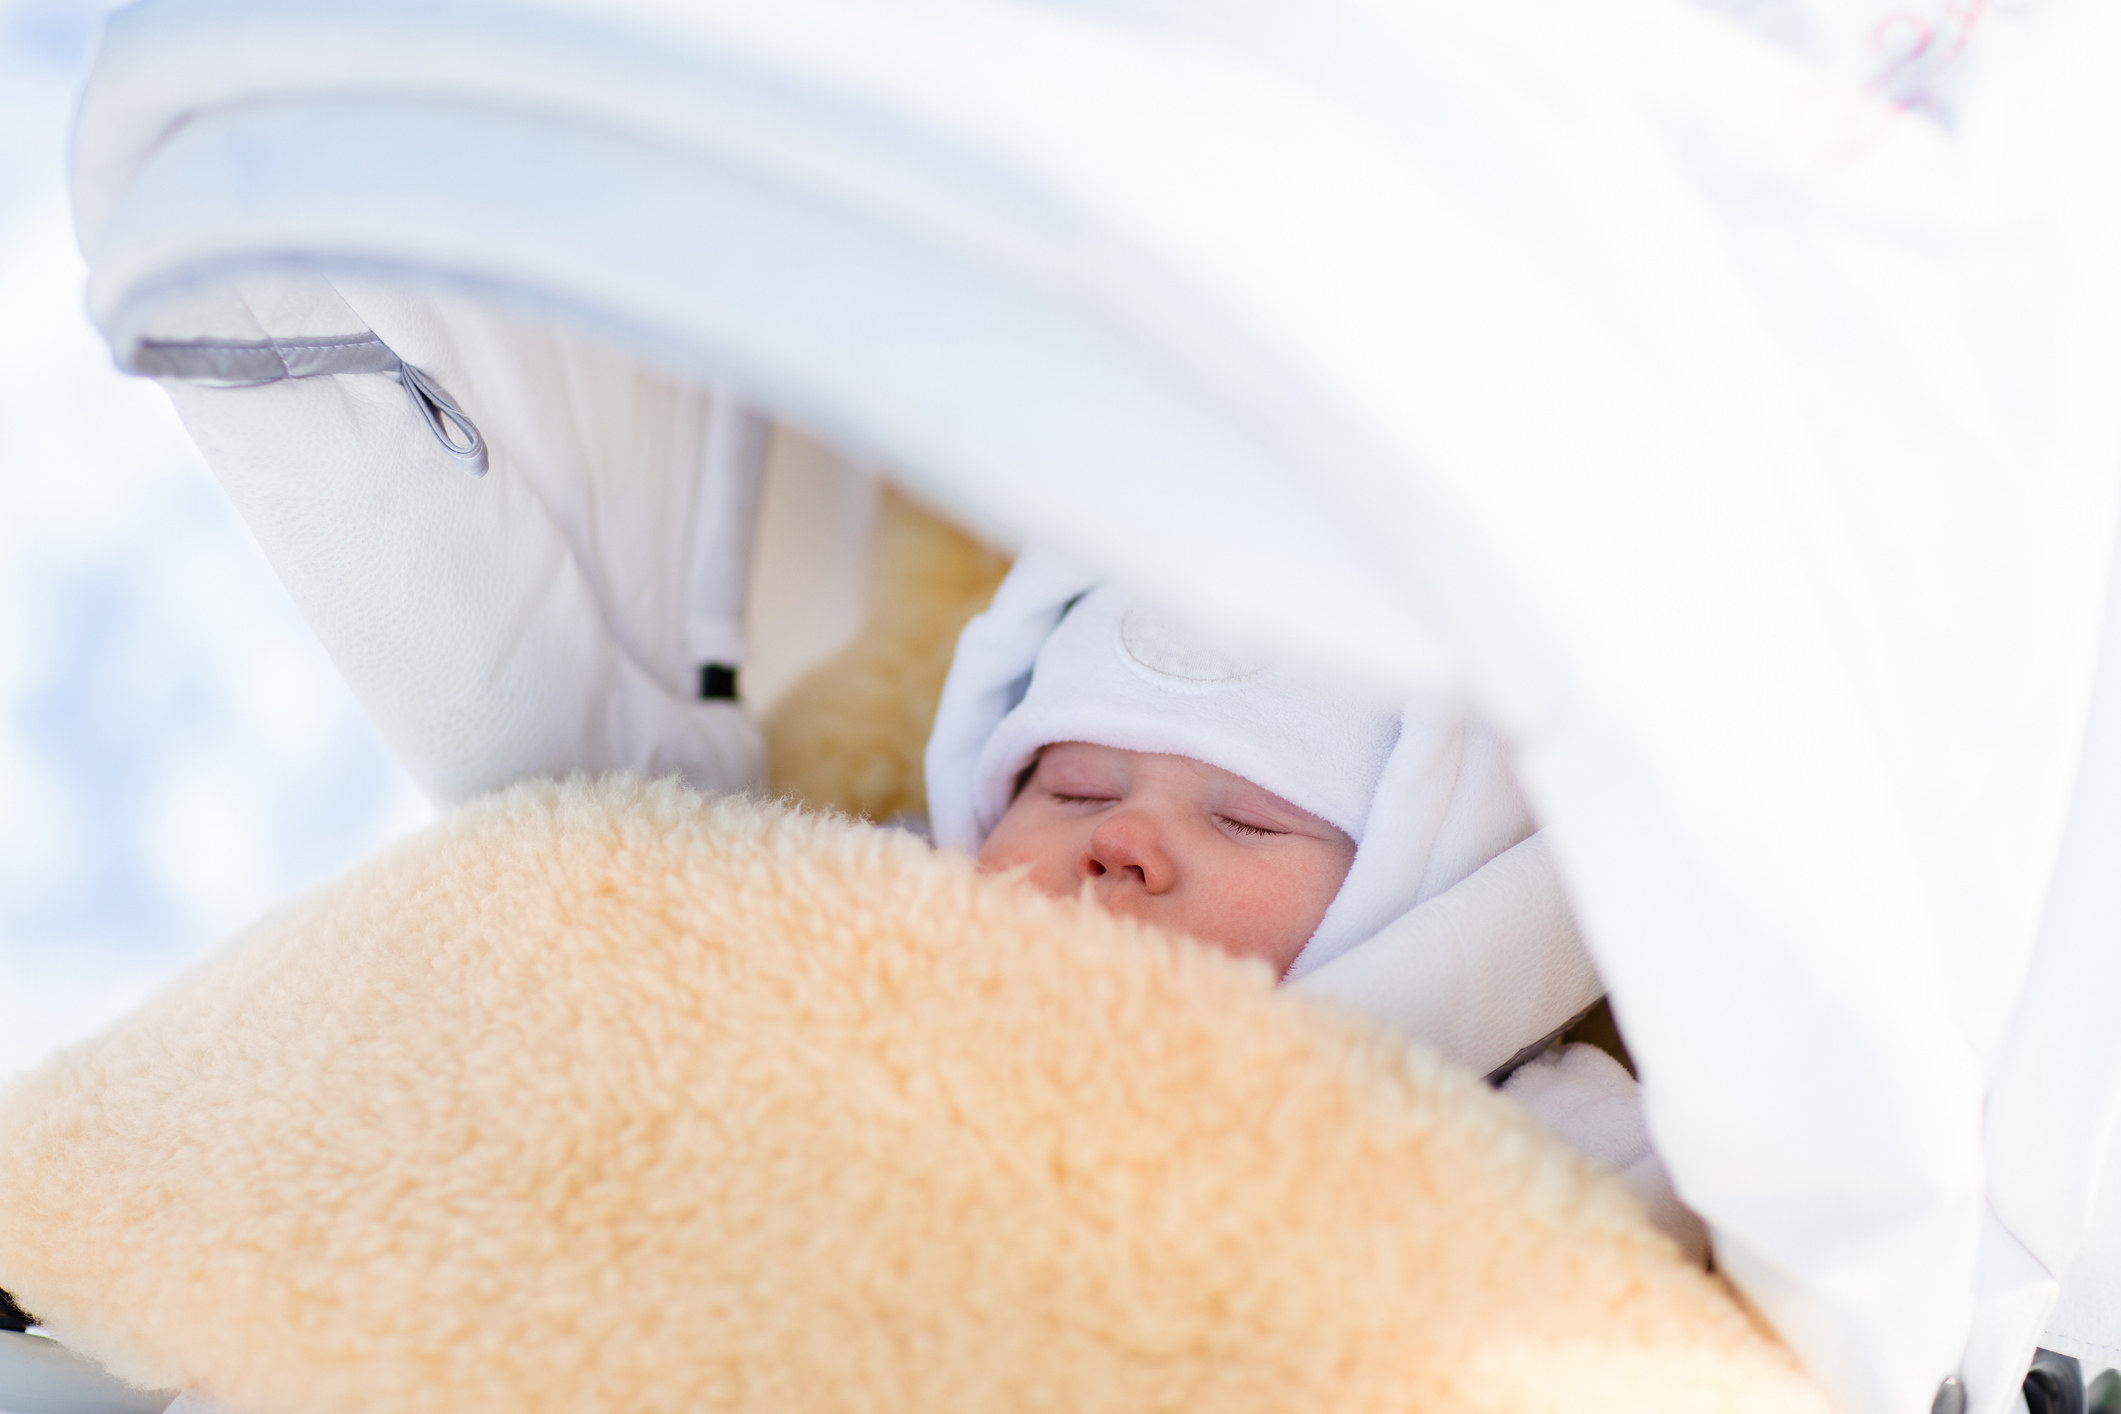 A baby bundled up in warm clothes and blanket sleeps inside of a stroller outside